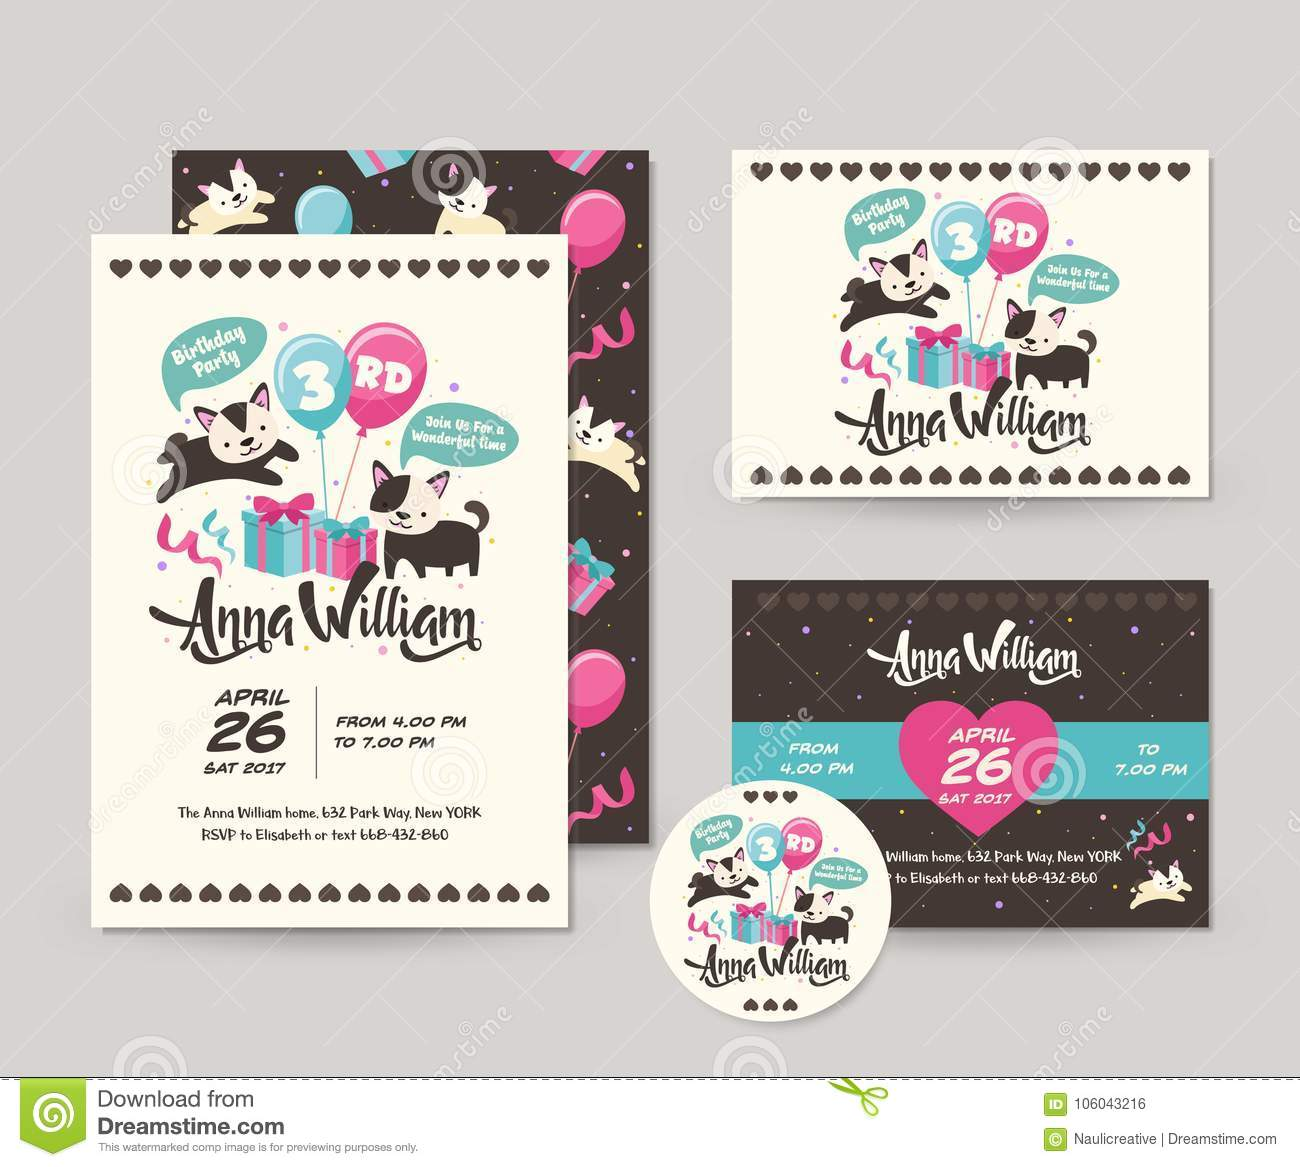 Netter Seltener Schwarzer Cat Theme Happy Birthday Invitations Karten Satz Und Flieger Illustrations